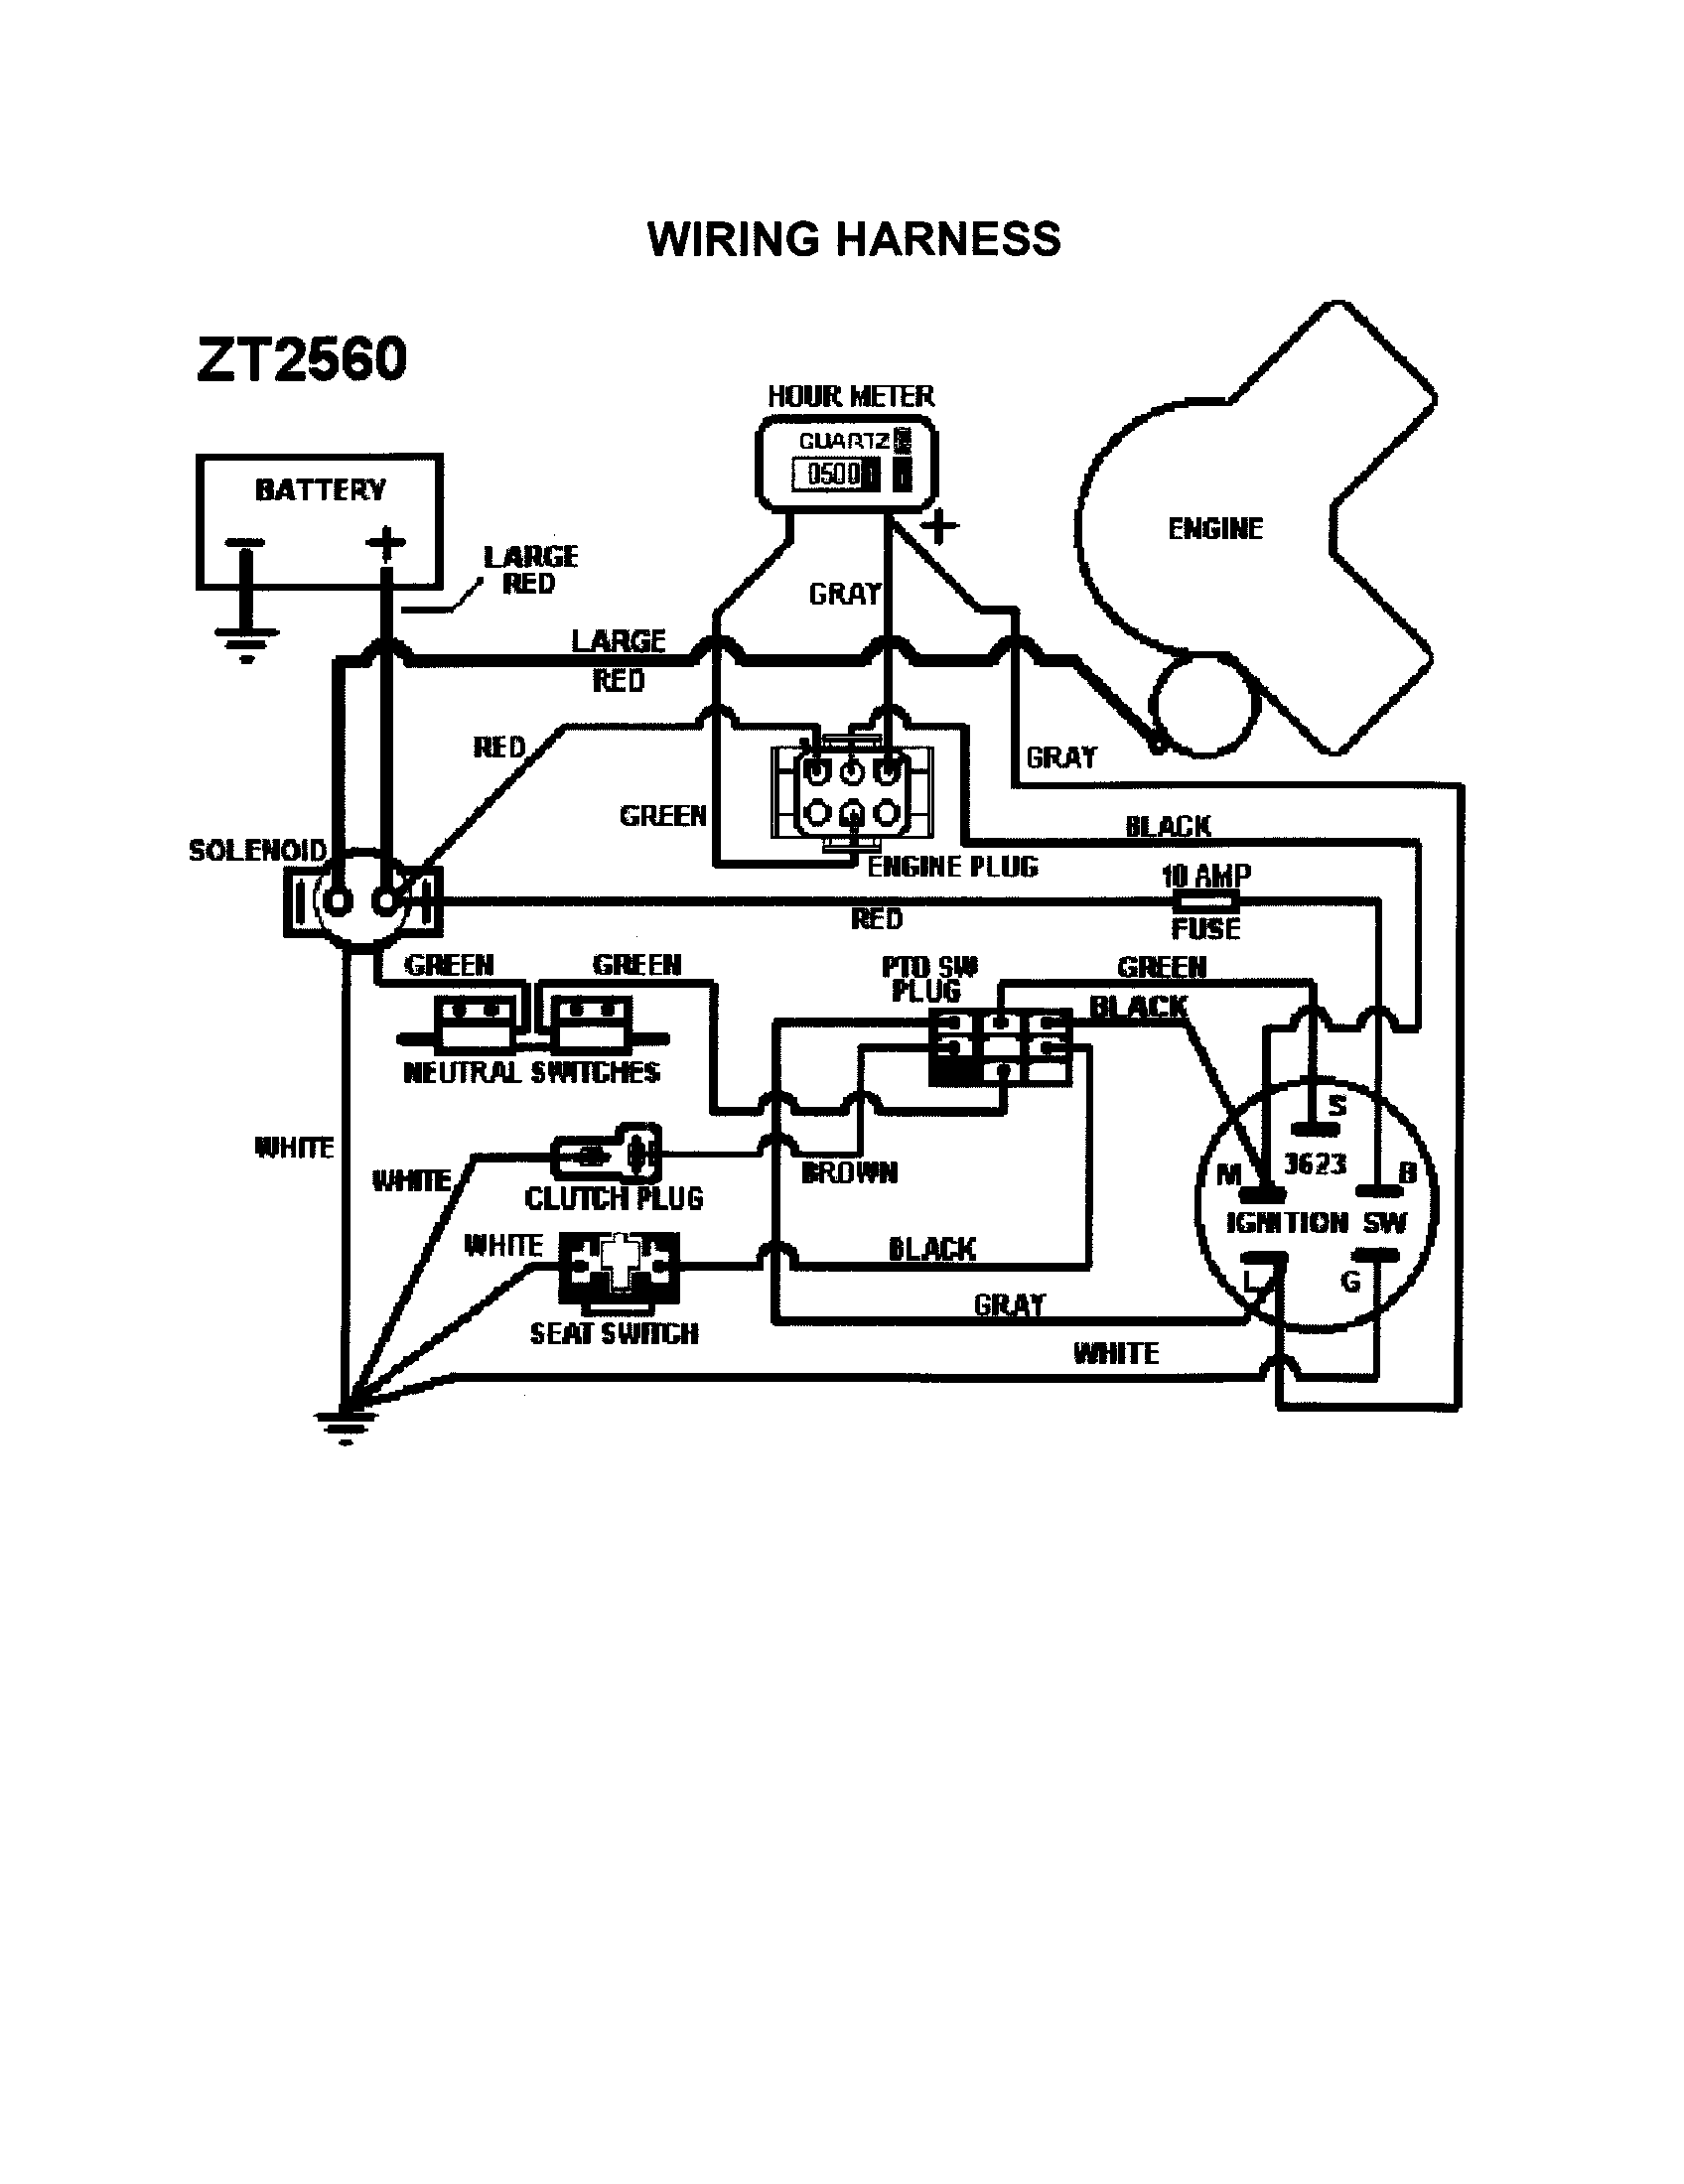 scotts s2048 wiring diagram dx 7036  lawn tractor wiring harness  dx 7036  lawn tractor wiring harness